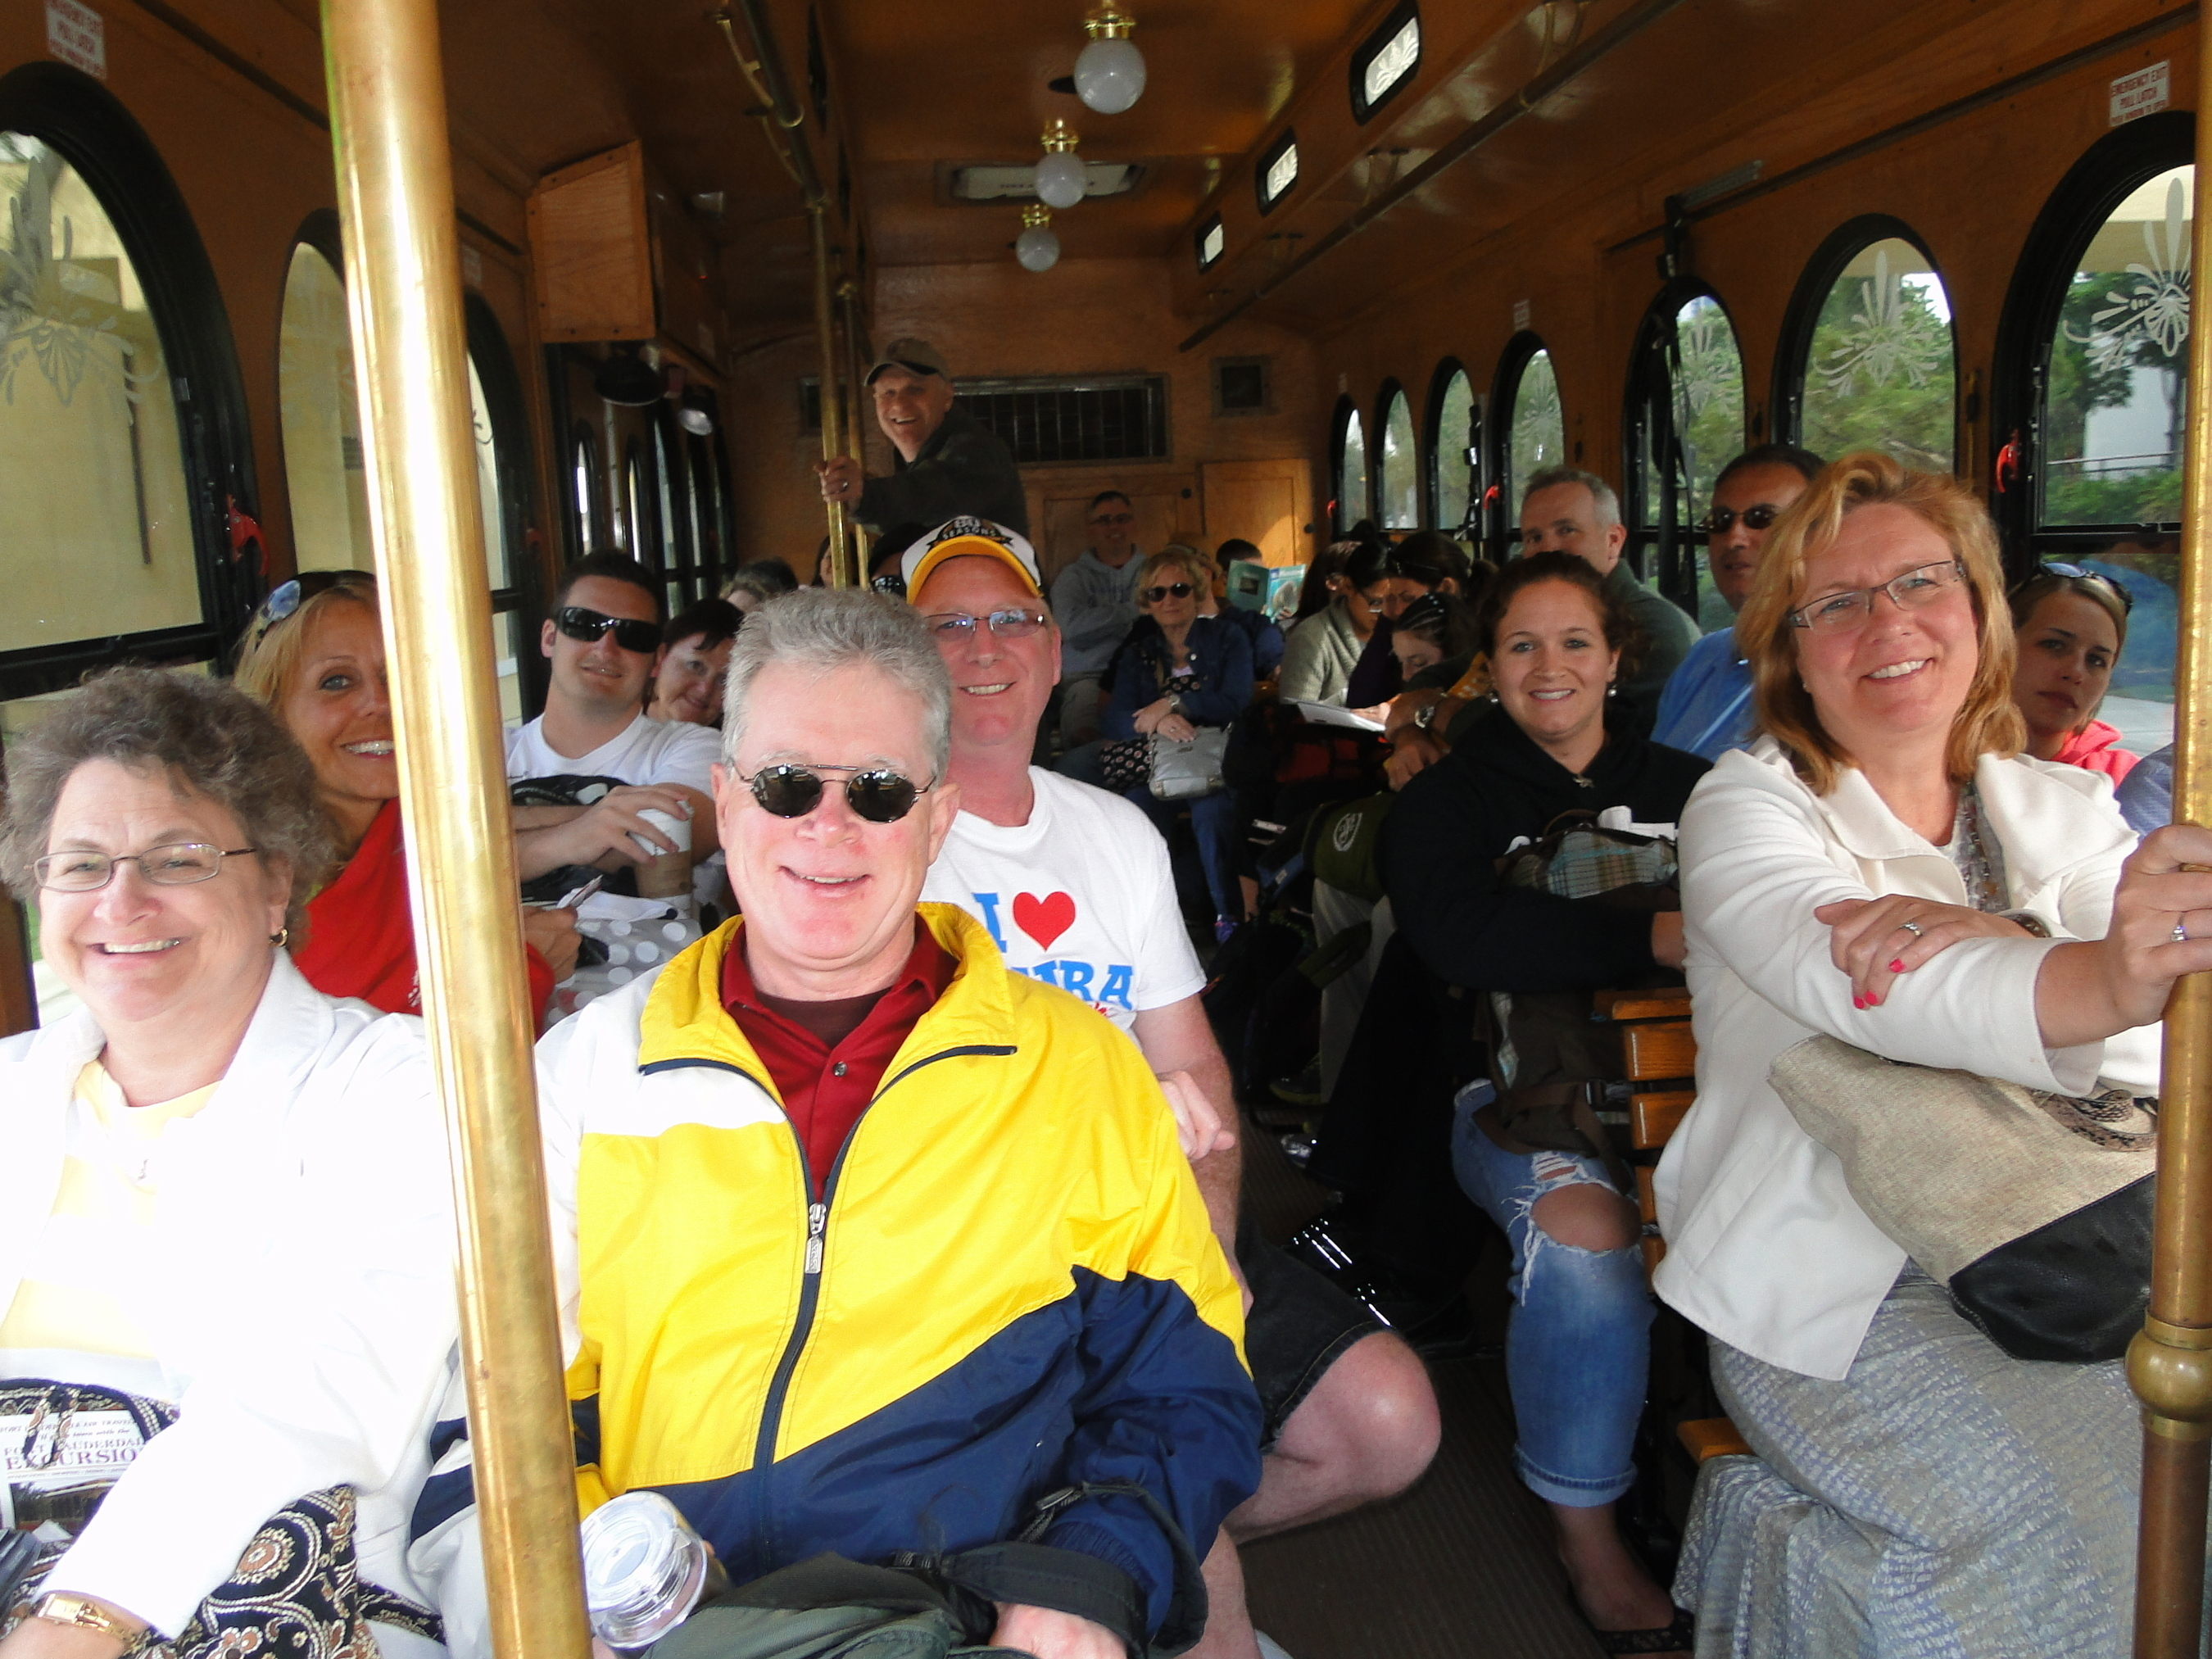 The Sun Trolley is affordable and easy to use - Just Wave N' Ride along any of its seven routes  (PRNewsFoto/Sun Trolley)